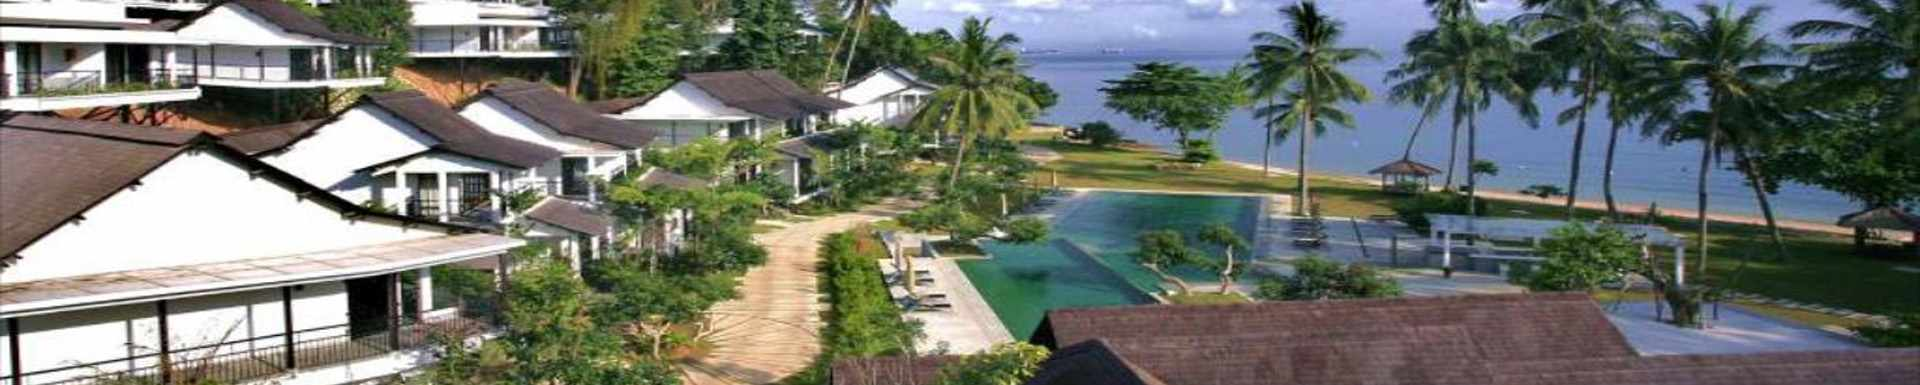 Turi Beach Resort ( Indonesia )